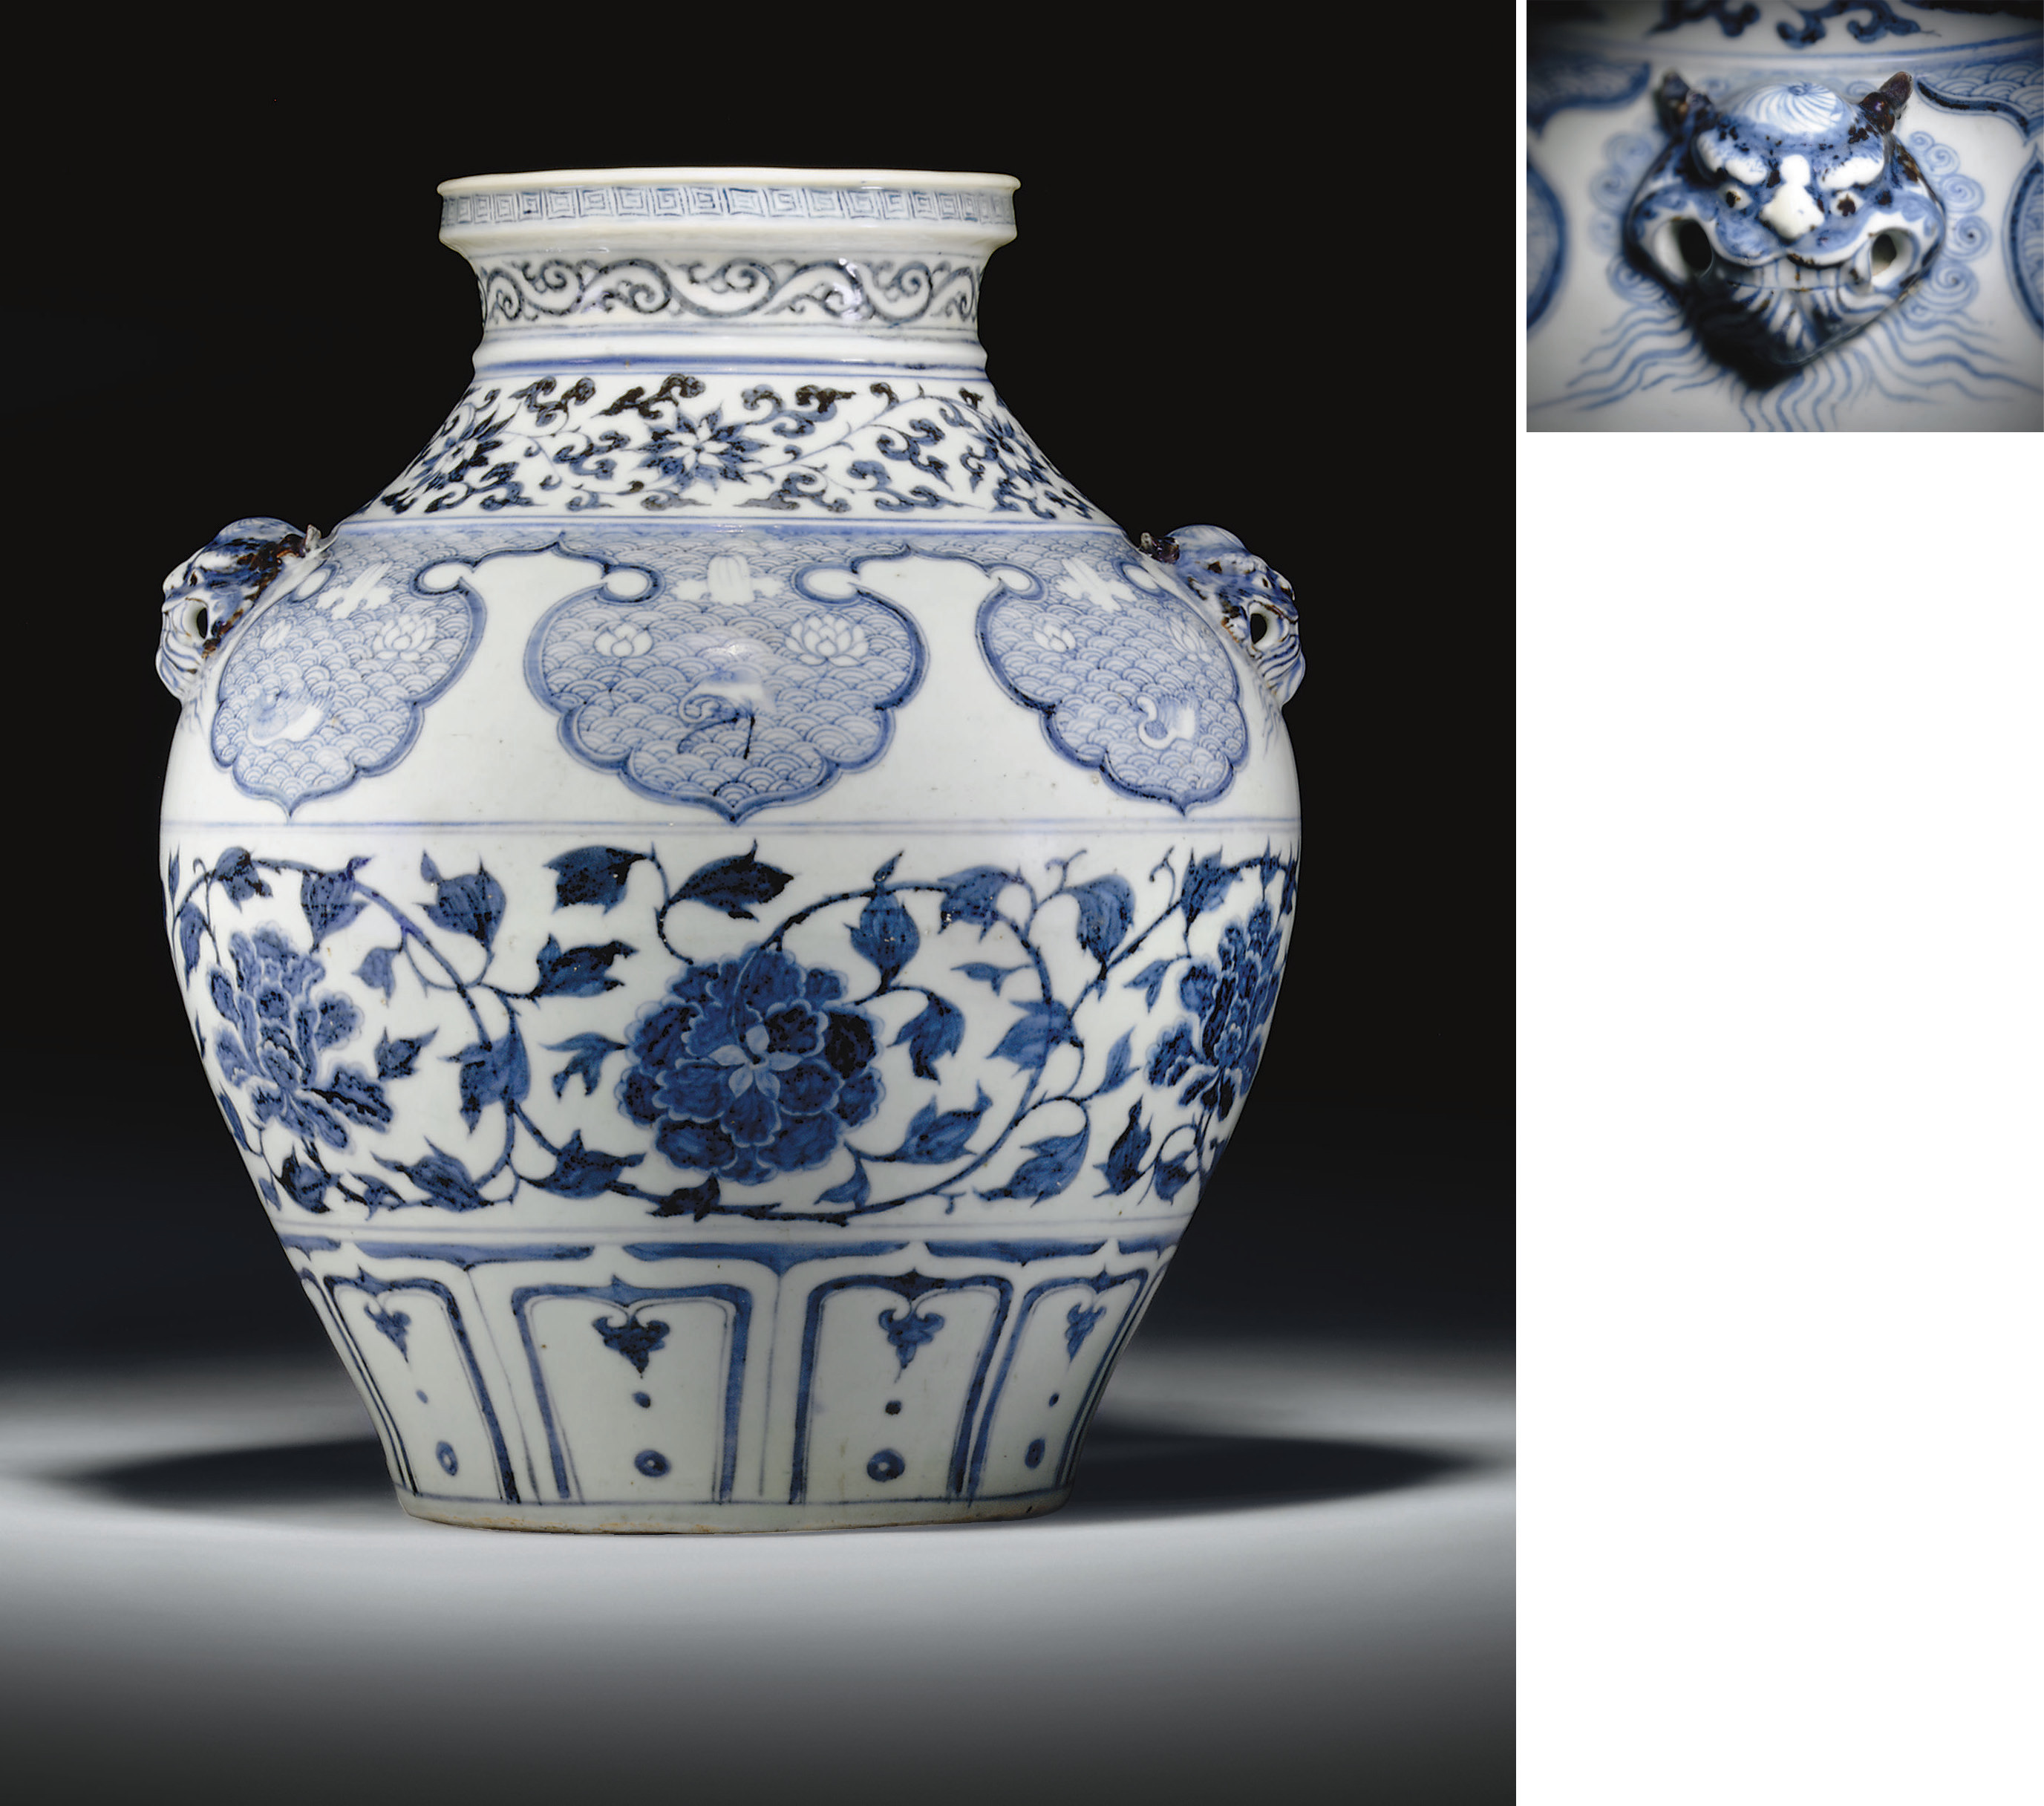 A RARE LARGE BLUE AND WHITE JAR, GUAN